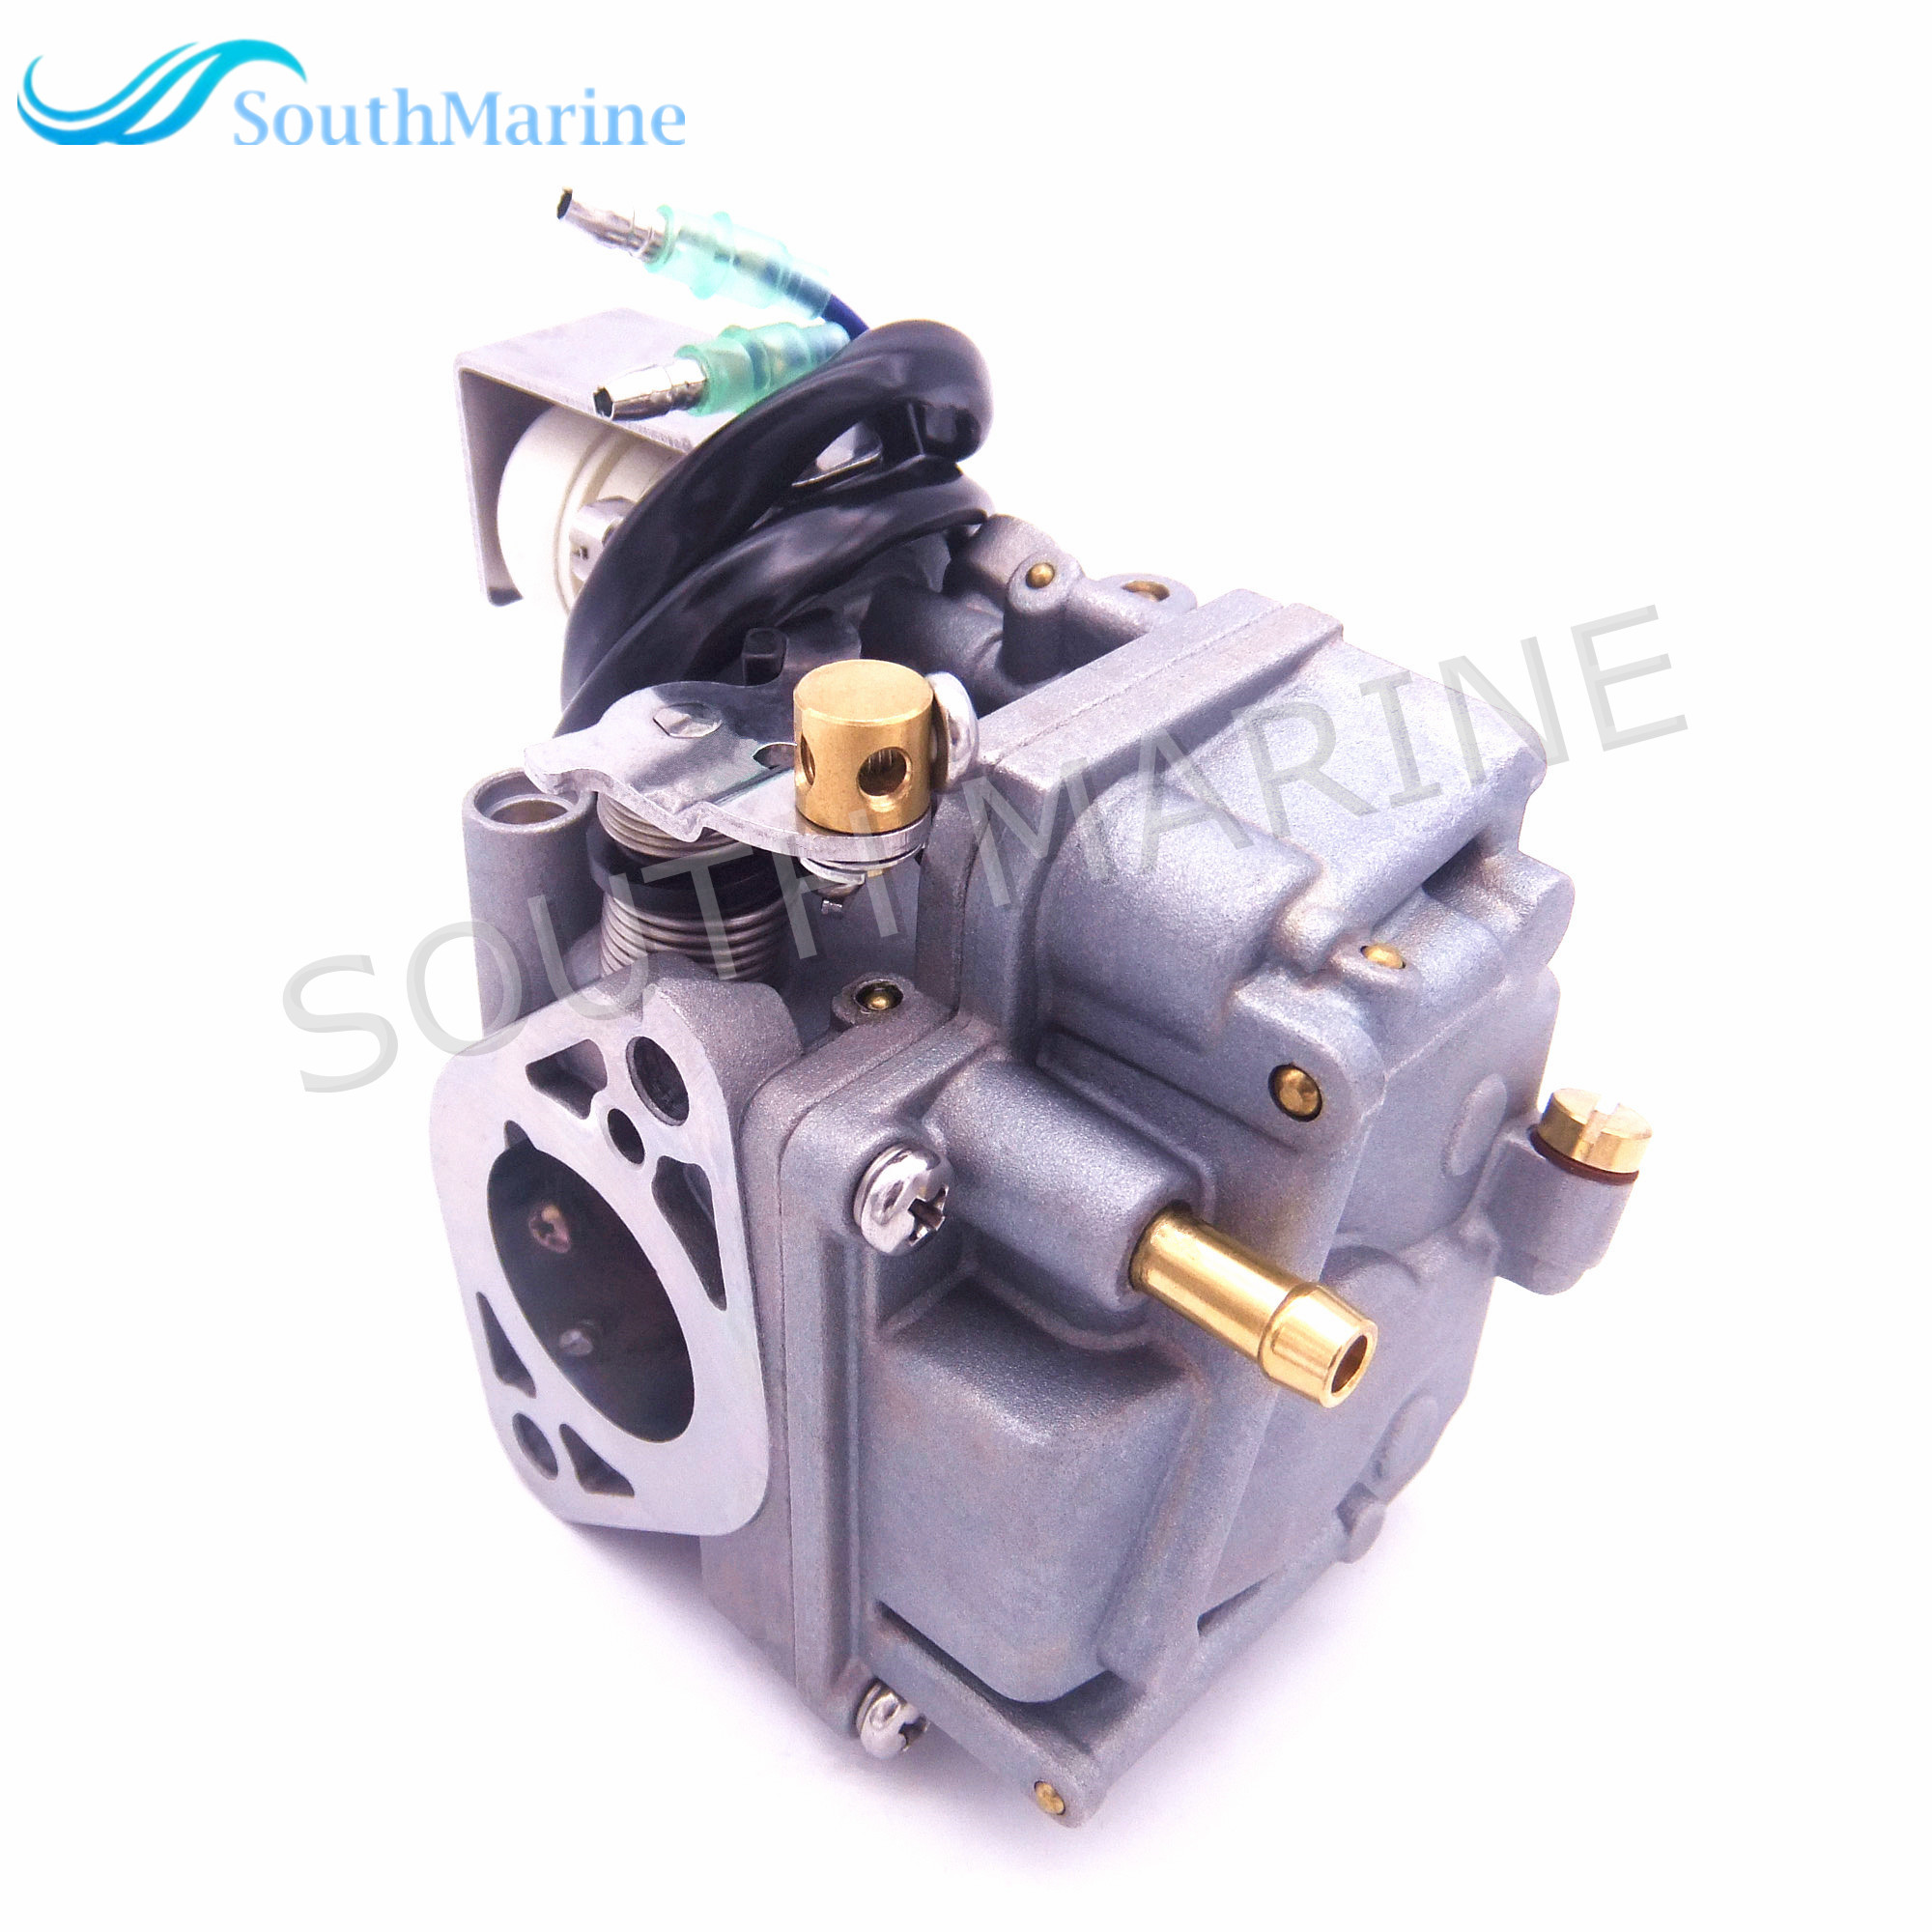 все цены на  Outboard Engine Carburetor Assy F20-05080000 for Parsun 4-stroke F20A F15A Boat Motor Free Shipping  онлайн